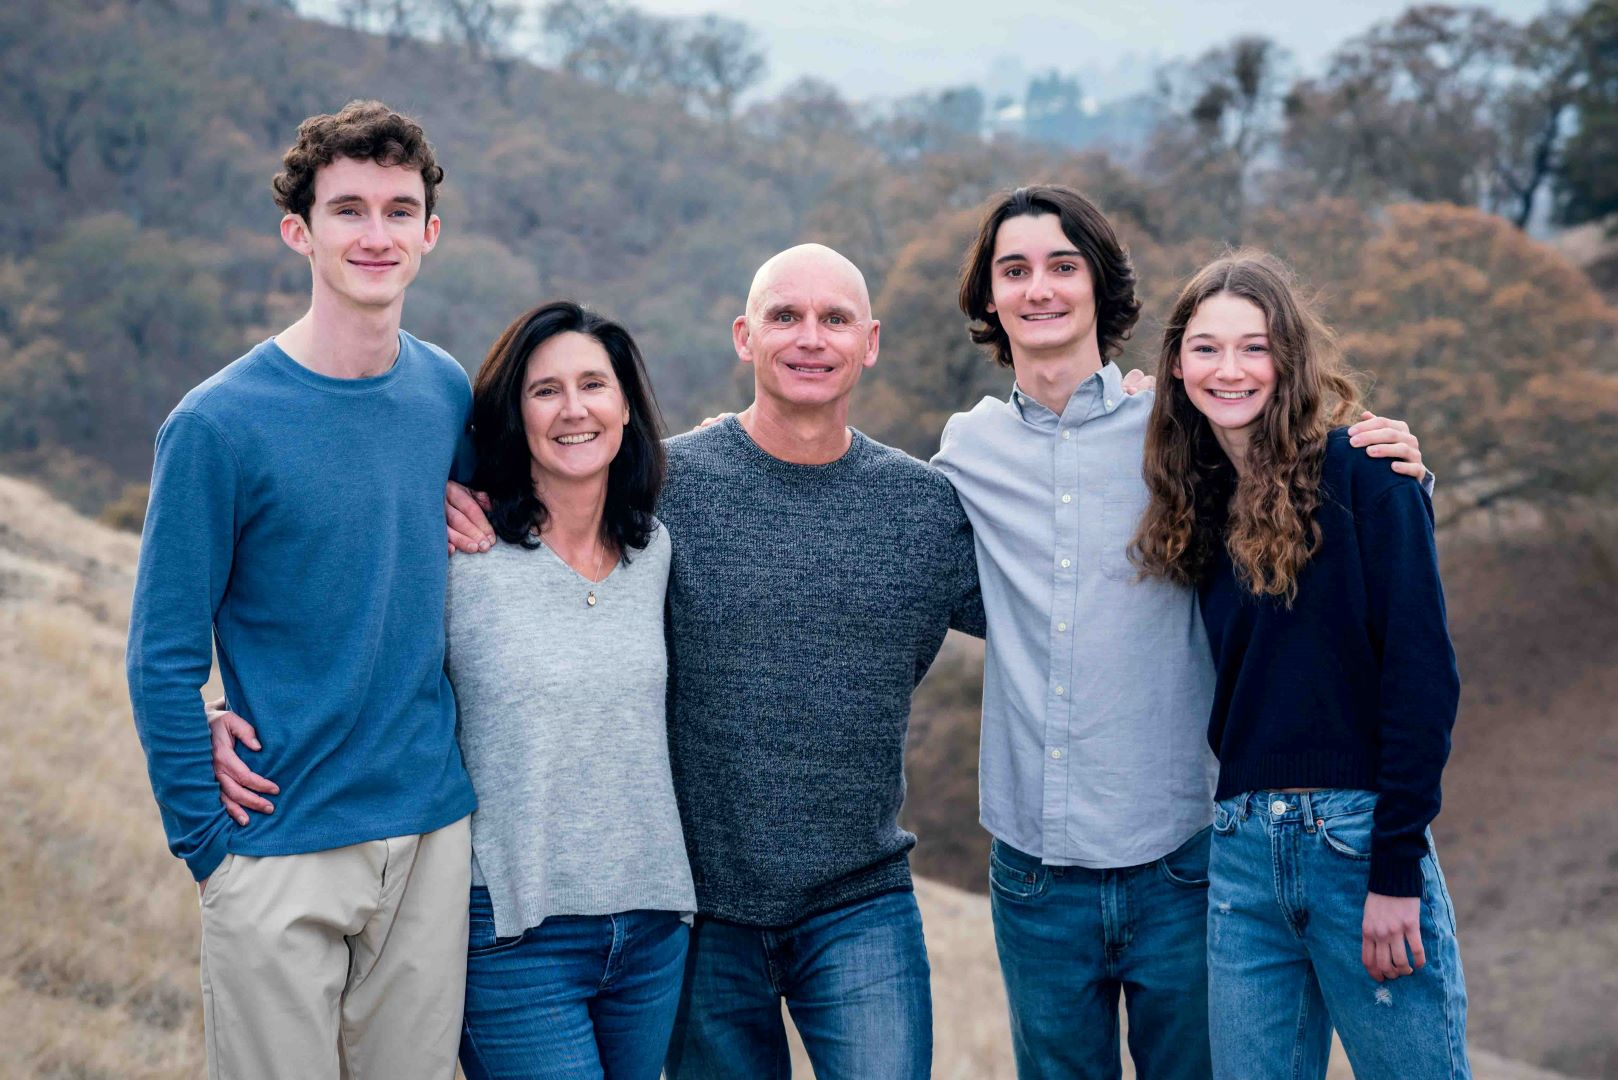 neilson family photography walnut creek outdoors mountains trees nature borges ranch mount diablo group shot